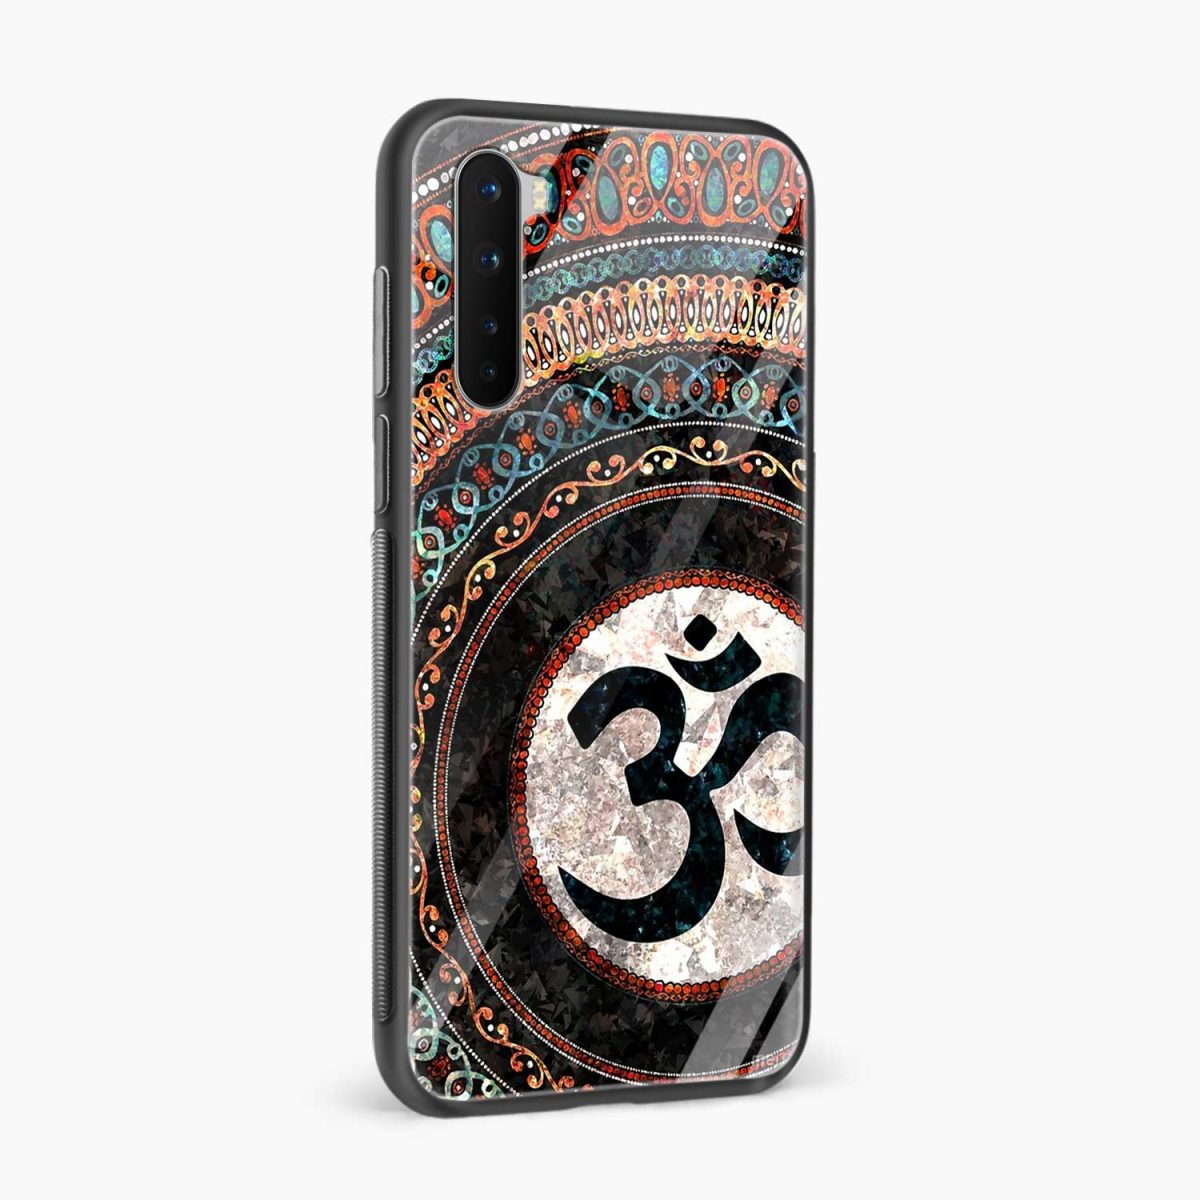 om glass side view oneplus nord back cover